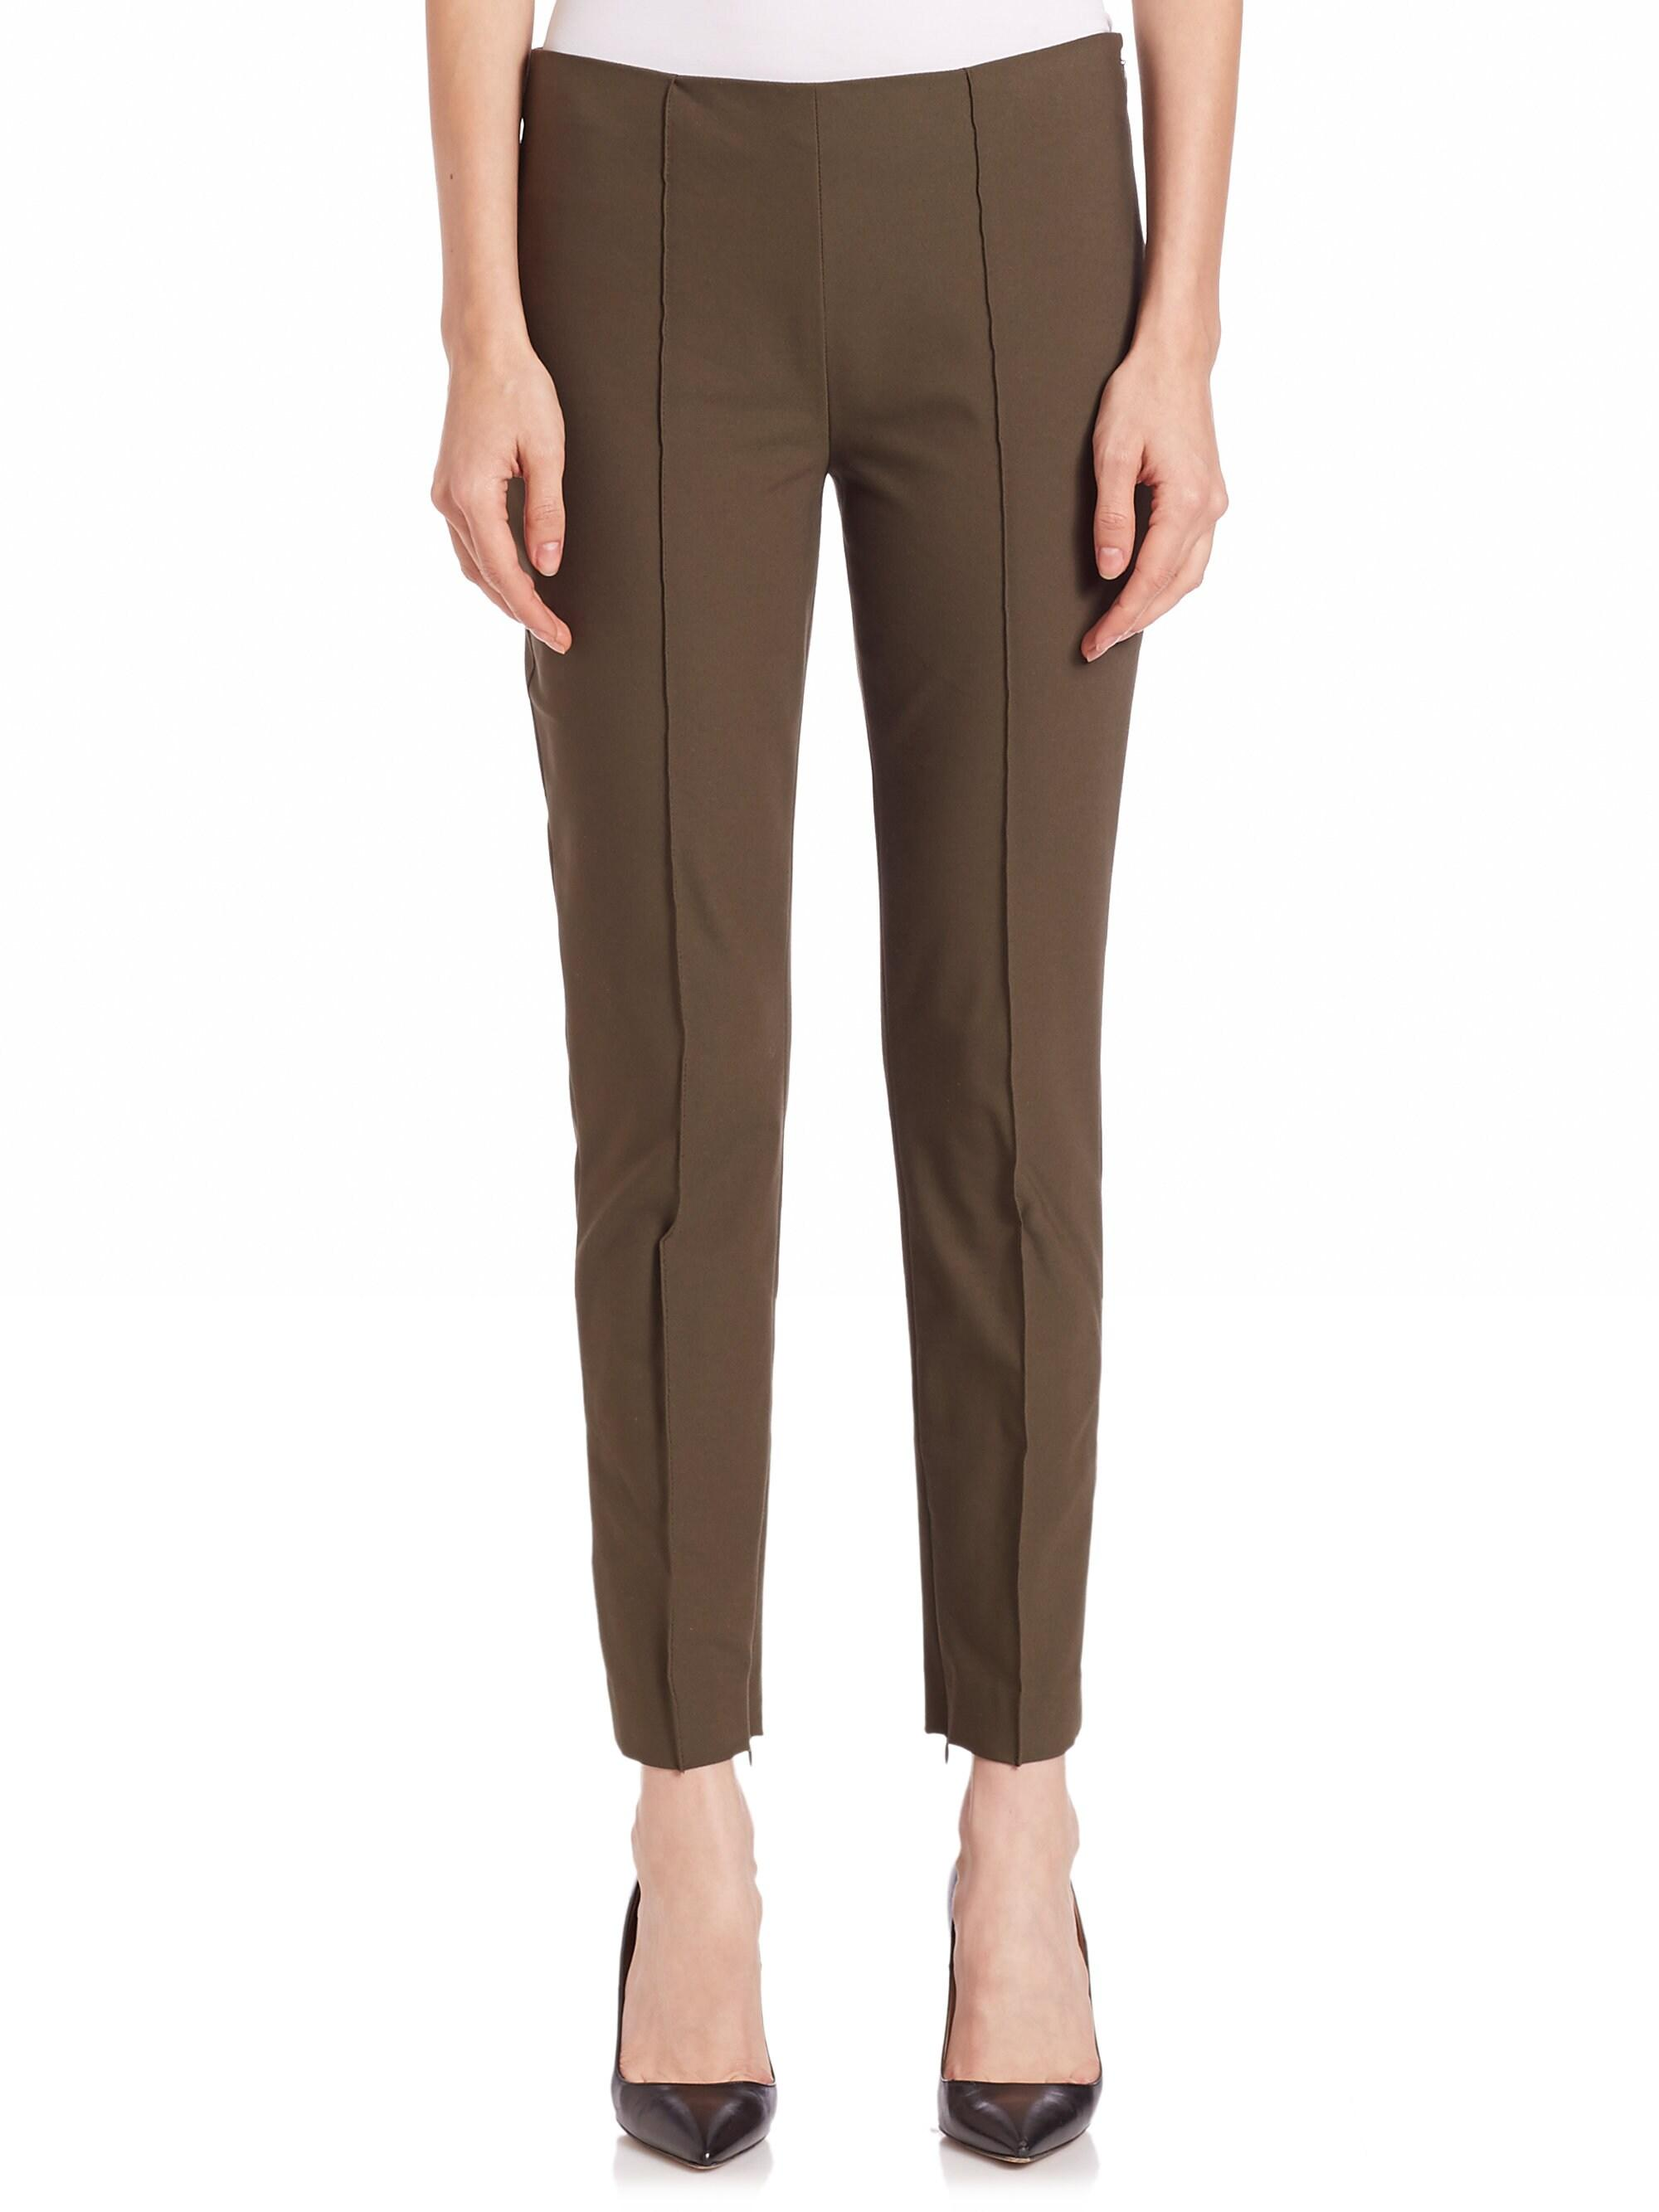 55a30df2d0 Theory Women's Alettah Approach Pants - New Ivory in Green - Lyst